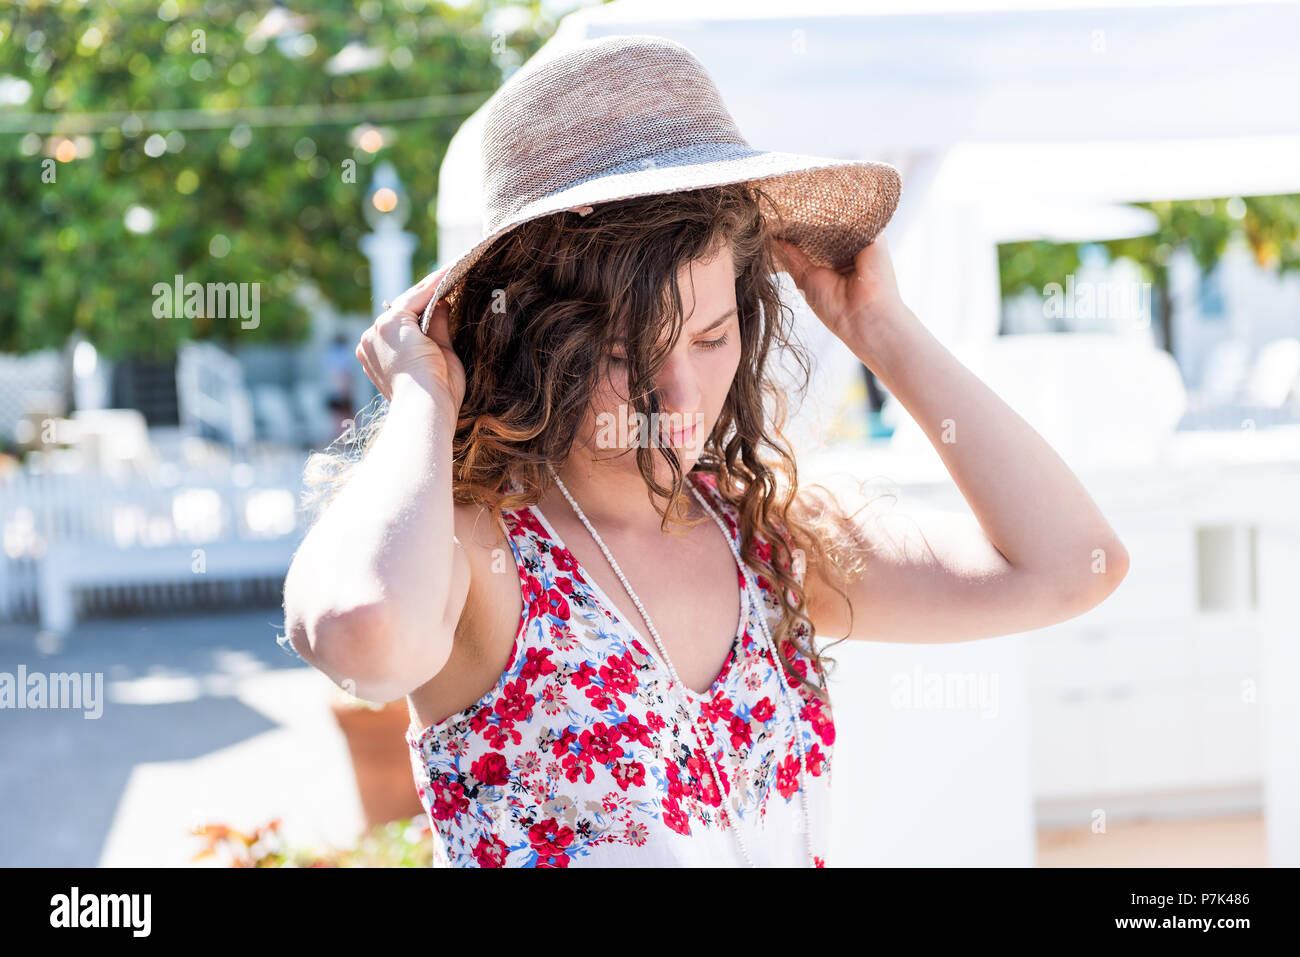 Closeup of young woman shopping for straw beach hat trying on in outdoor market shop store in European, Greece, Italy, Mediterranean town, village in  - Stock Image